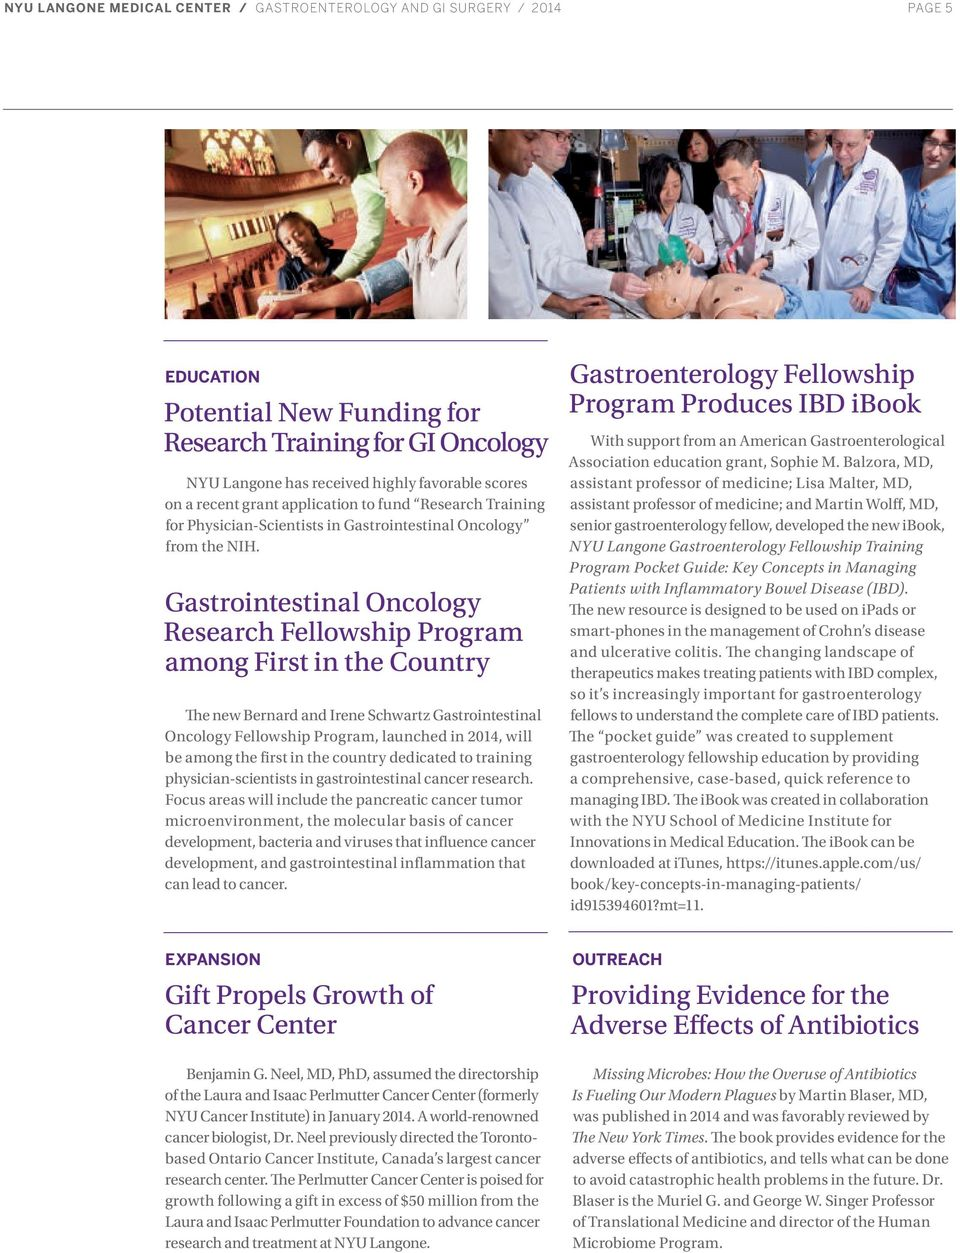 GASTROENTEROLOGY AND GI SURGERY 2014 YEAR IN REVIEW - PDF